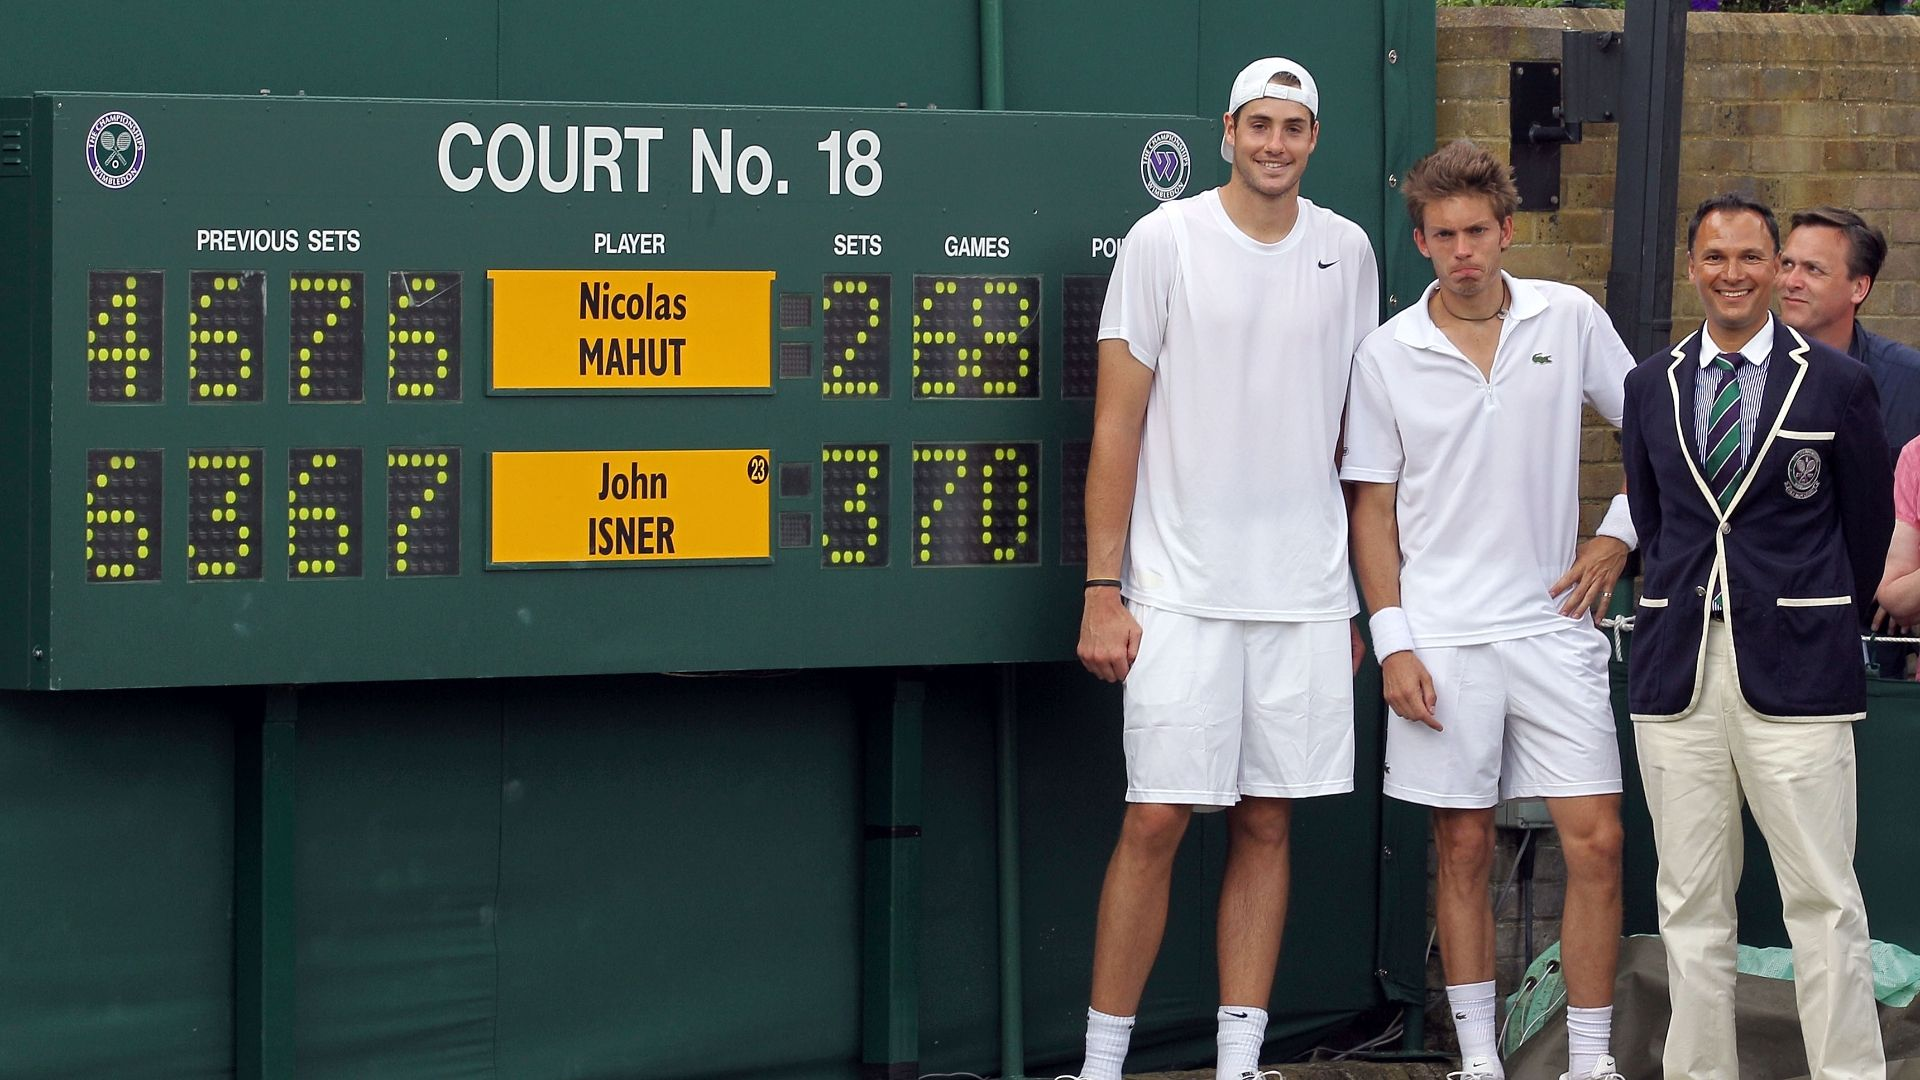 On This Date: The longest match in Wimbledon history